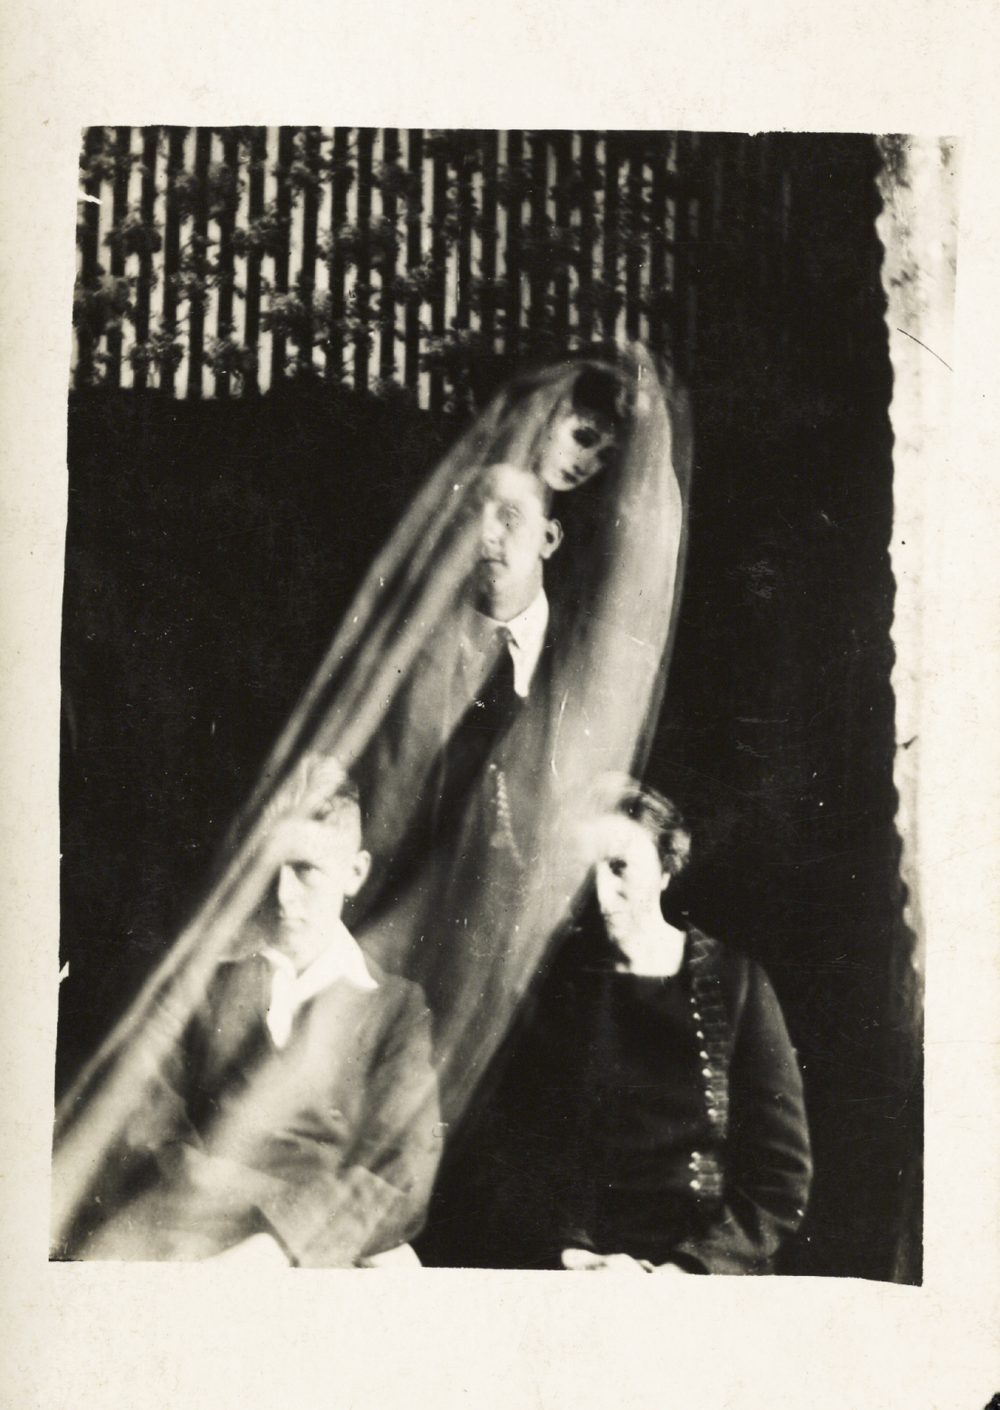 Spirit photograph by William Hope, c. 1920